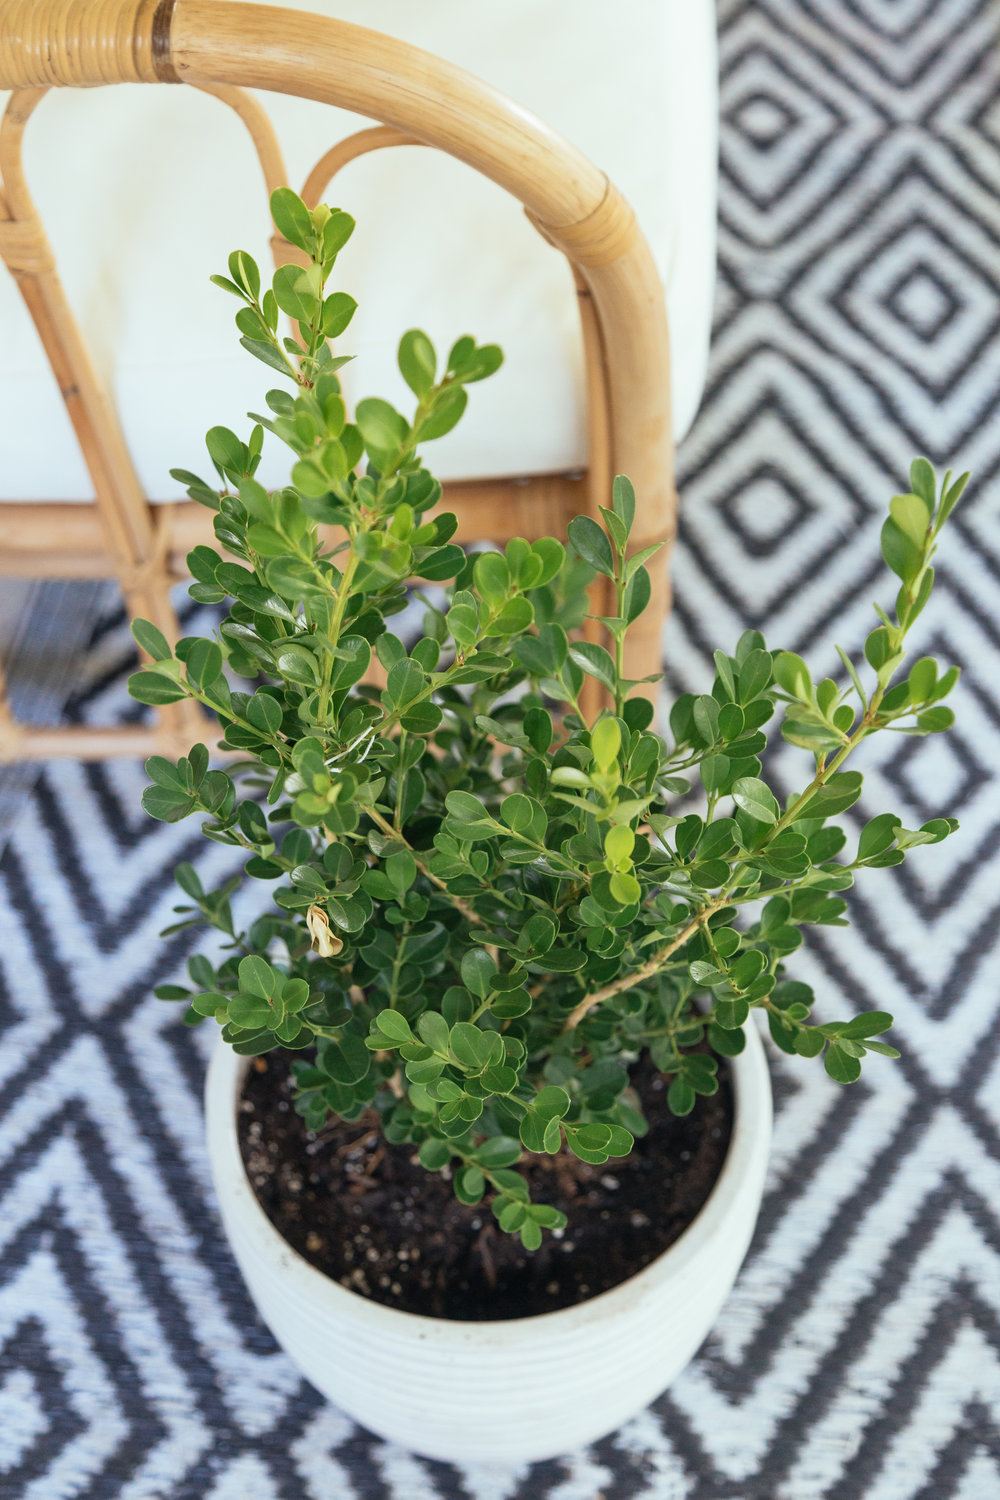 Recently bought this beautiful Boxwood from Lowes, but you can also buy it on Amazon.